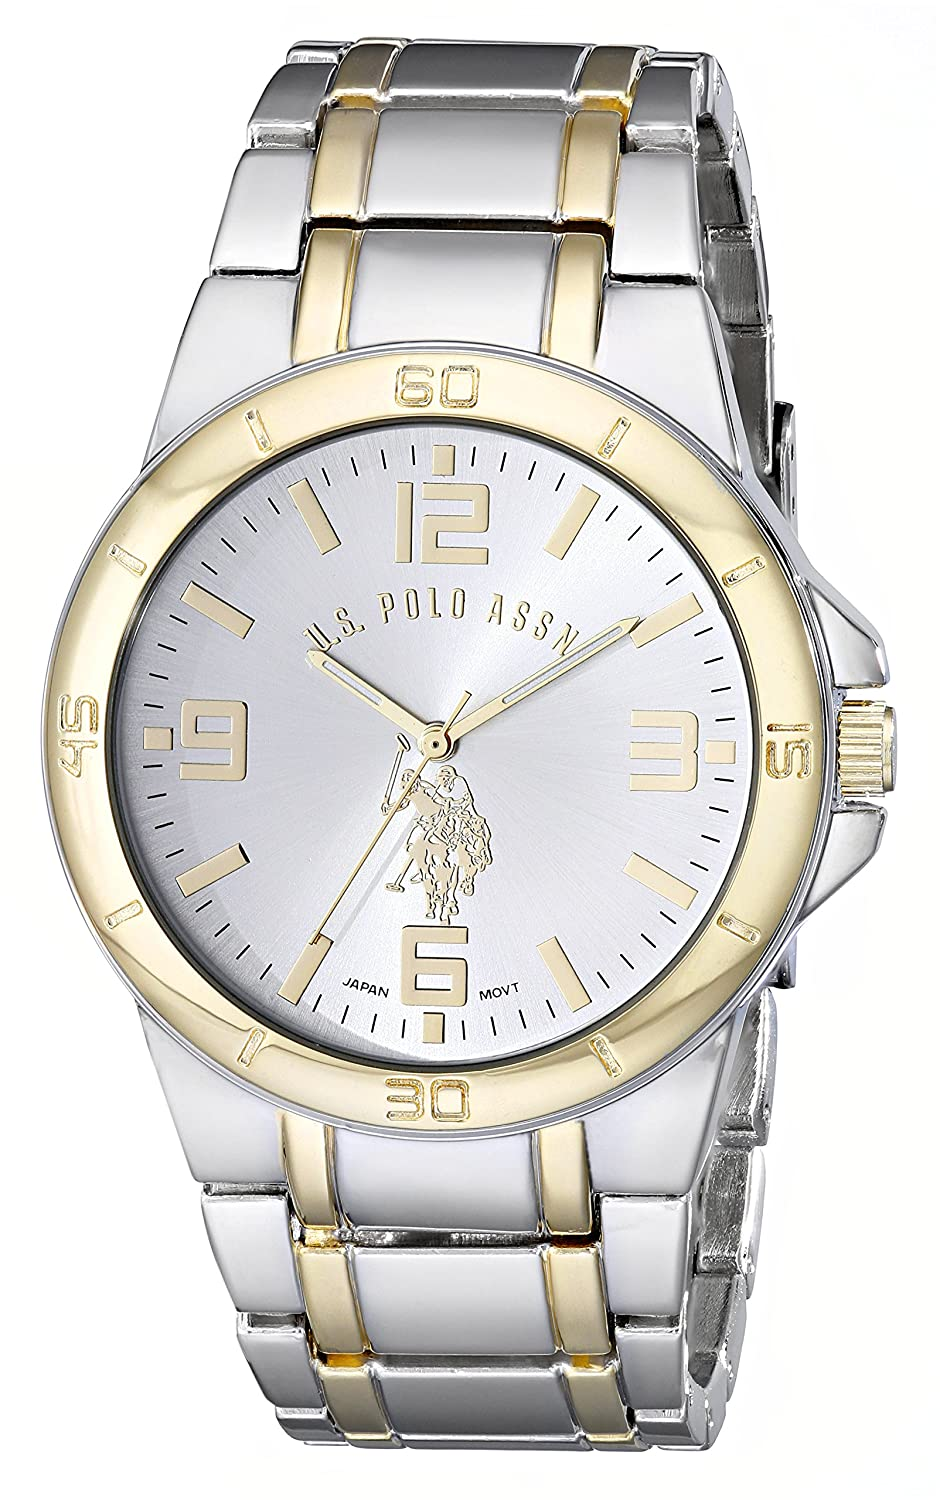 Buy U.S. Polo Assn. Classic Men's USC2254 Set of Two Two-Tone Watches Online at Low Prices in India - Amazon.in